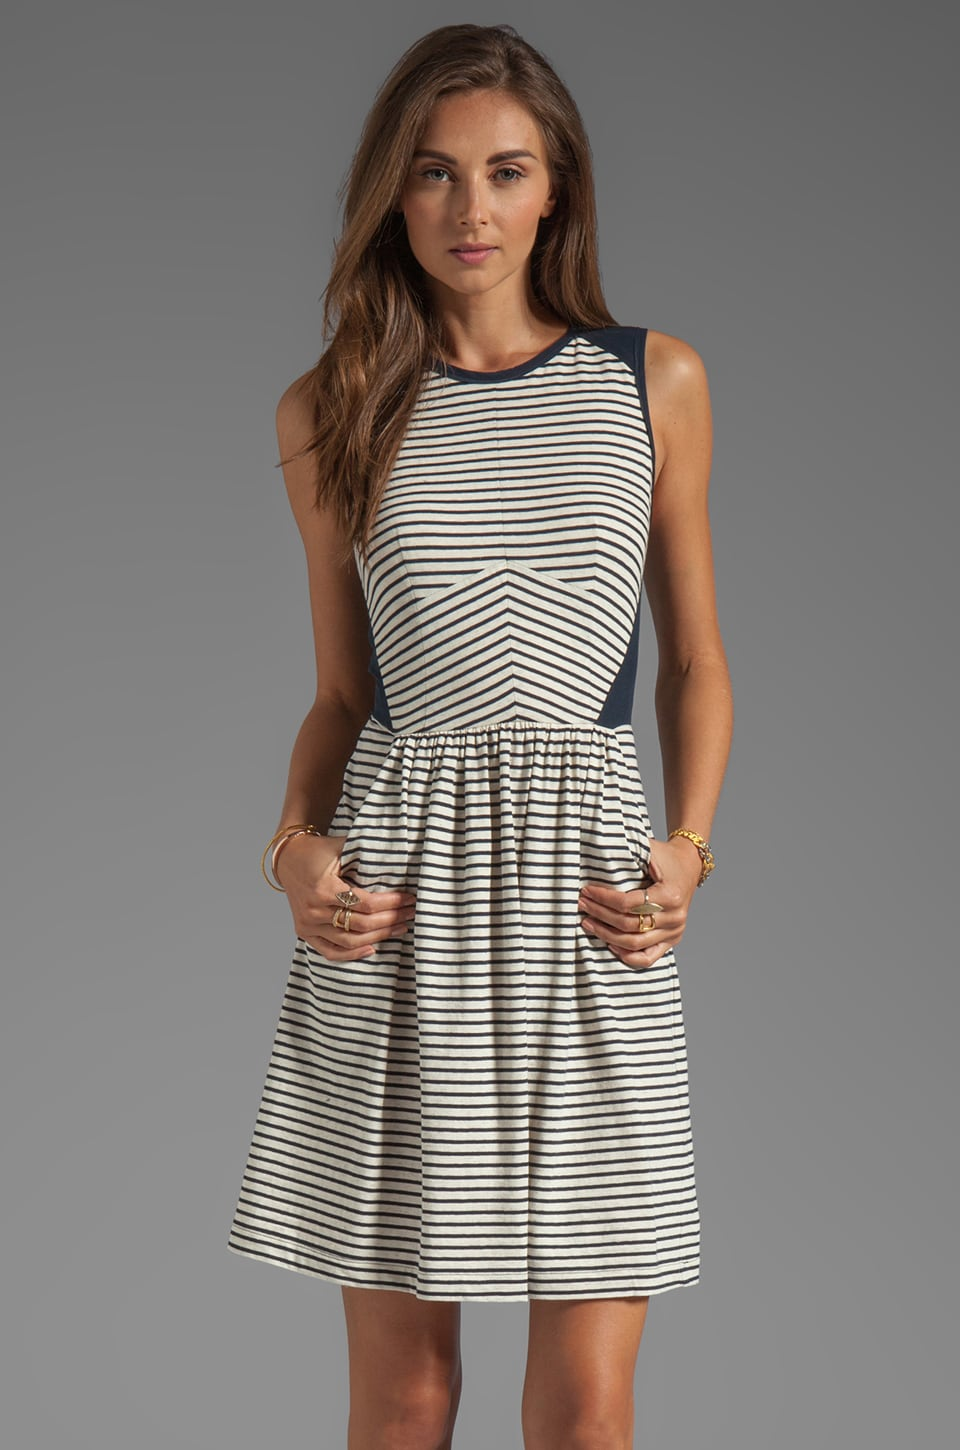 Rebecca Taylor Striped Dress in Navy Stripe